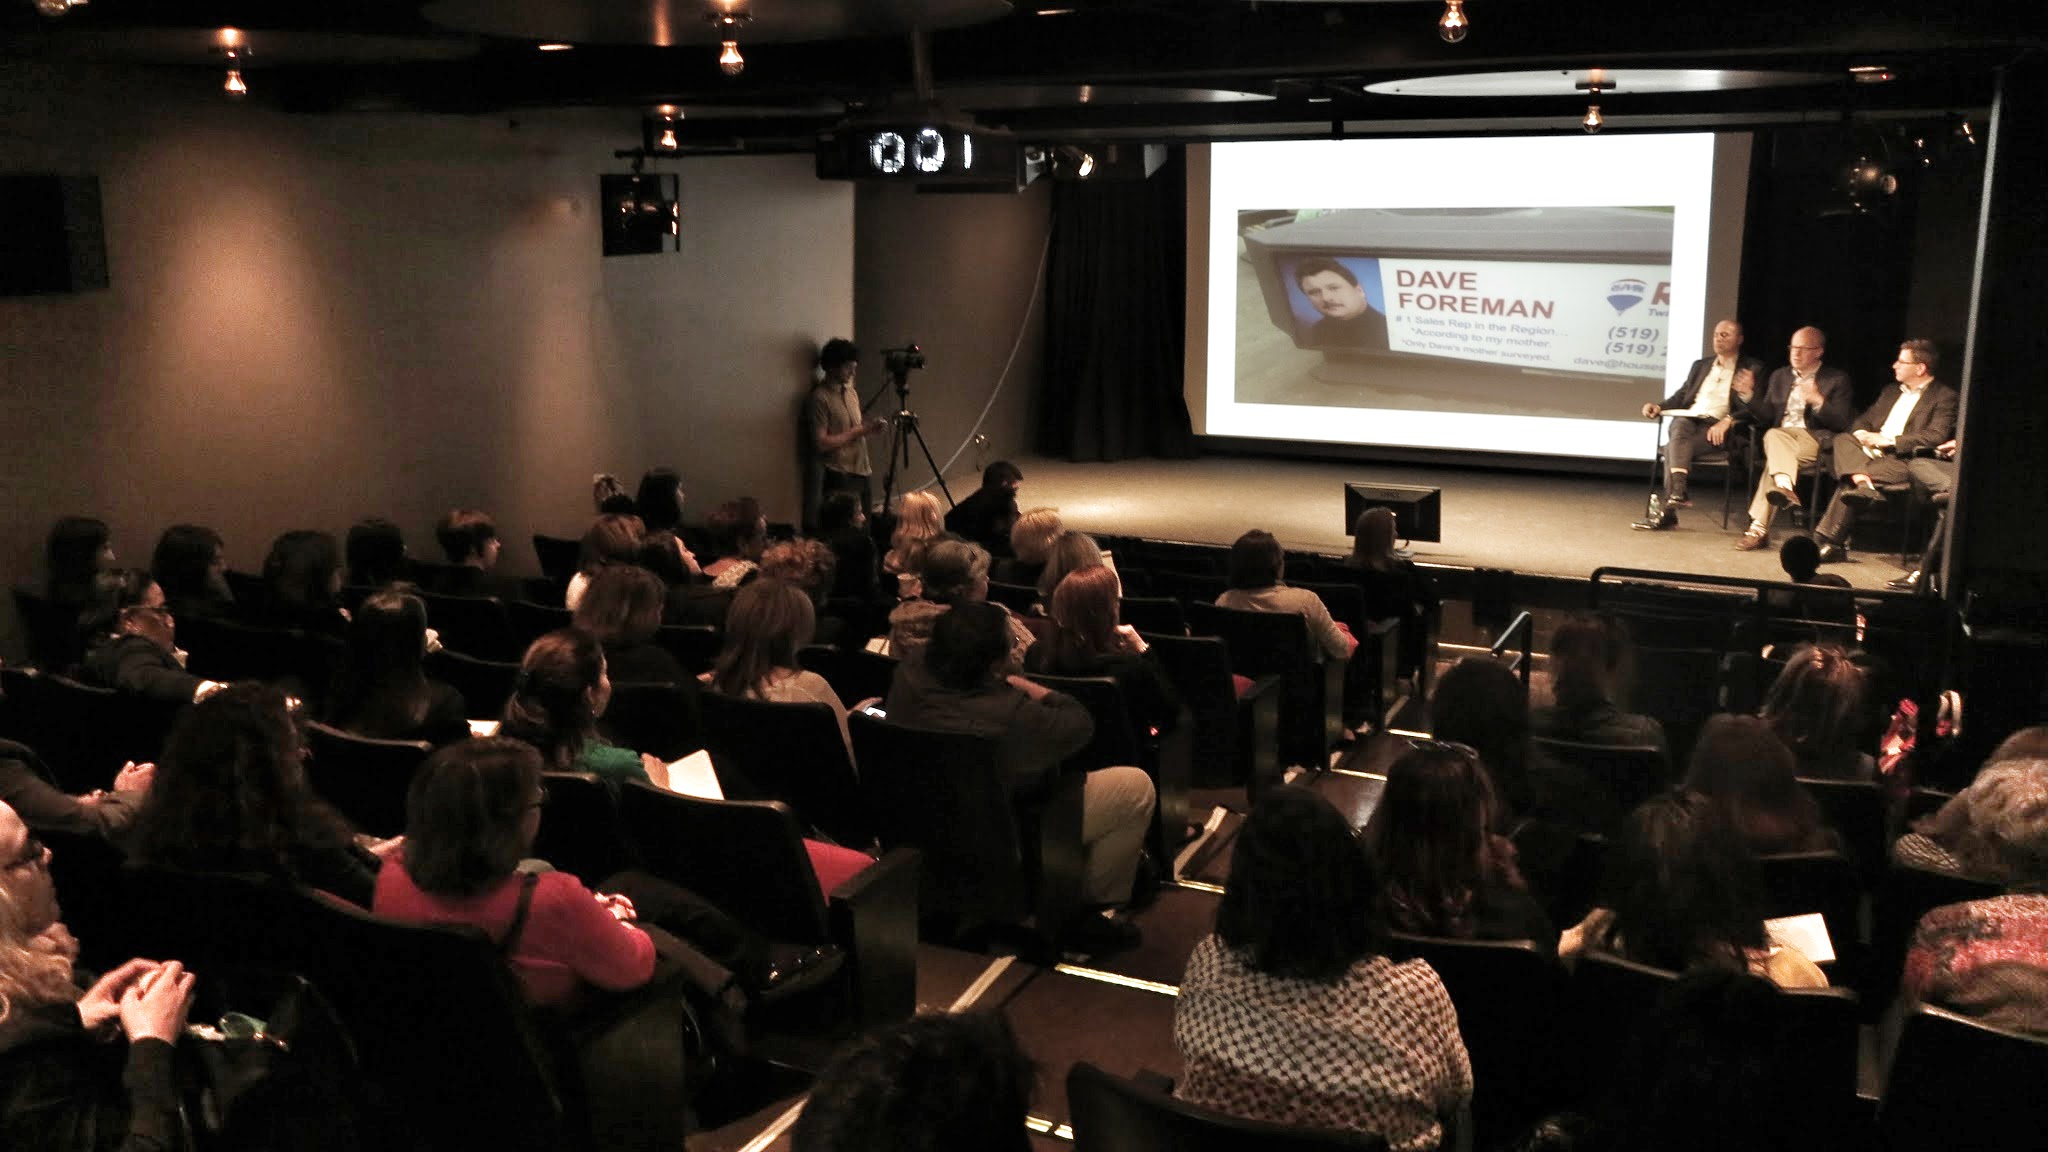 Presentation during AICP Week 2015 Base Camp in the HELEN MILLS Theater